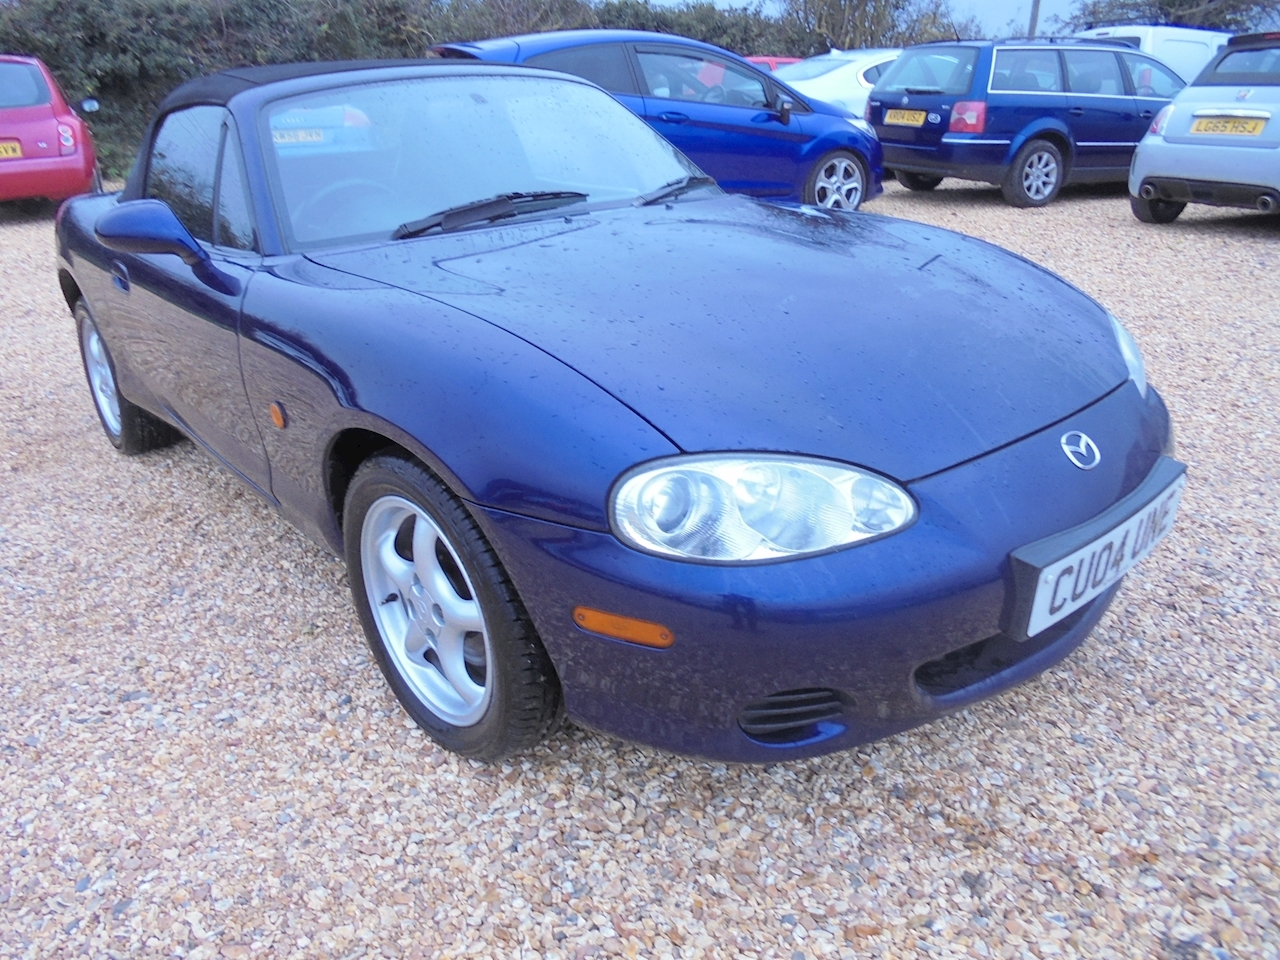 Mazda Mx-5 I Convertible 1.8 Manual Petrol